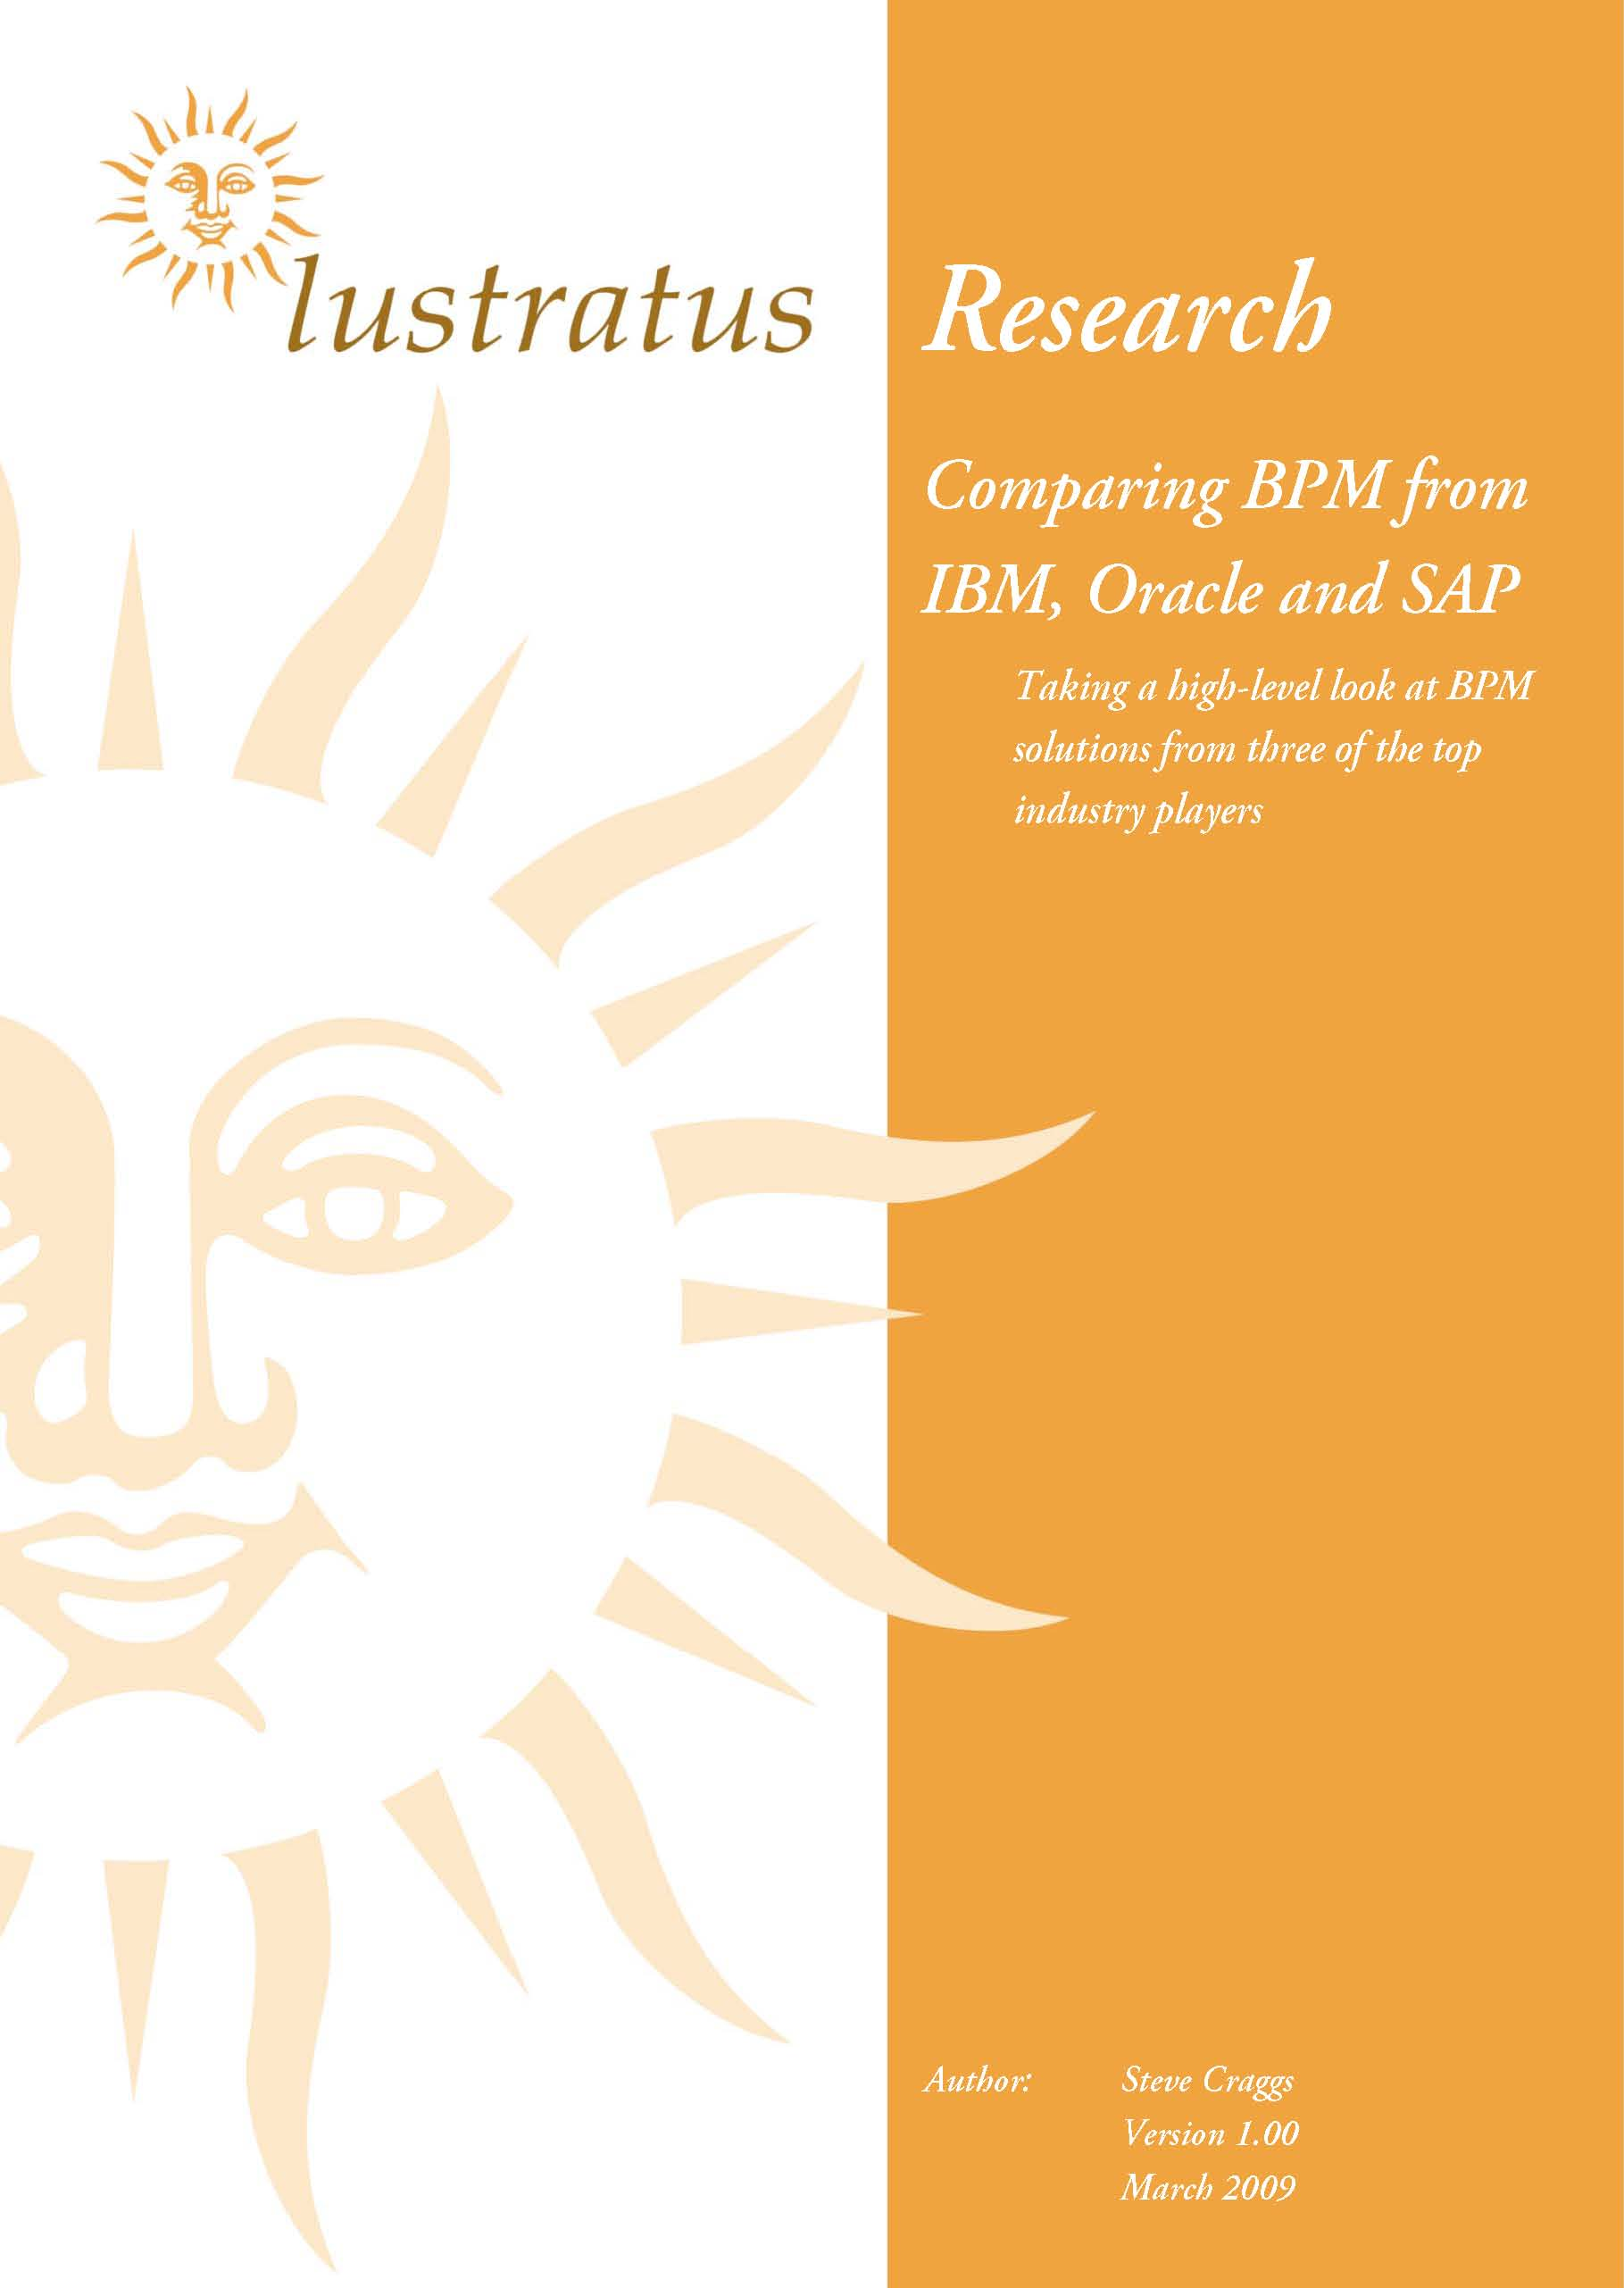 Pages from Comparing BPM from IBM, Oracle and SAP